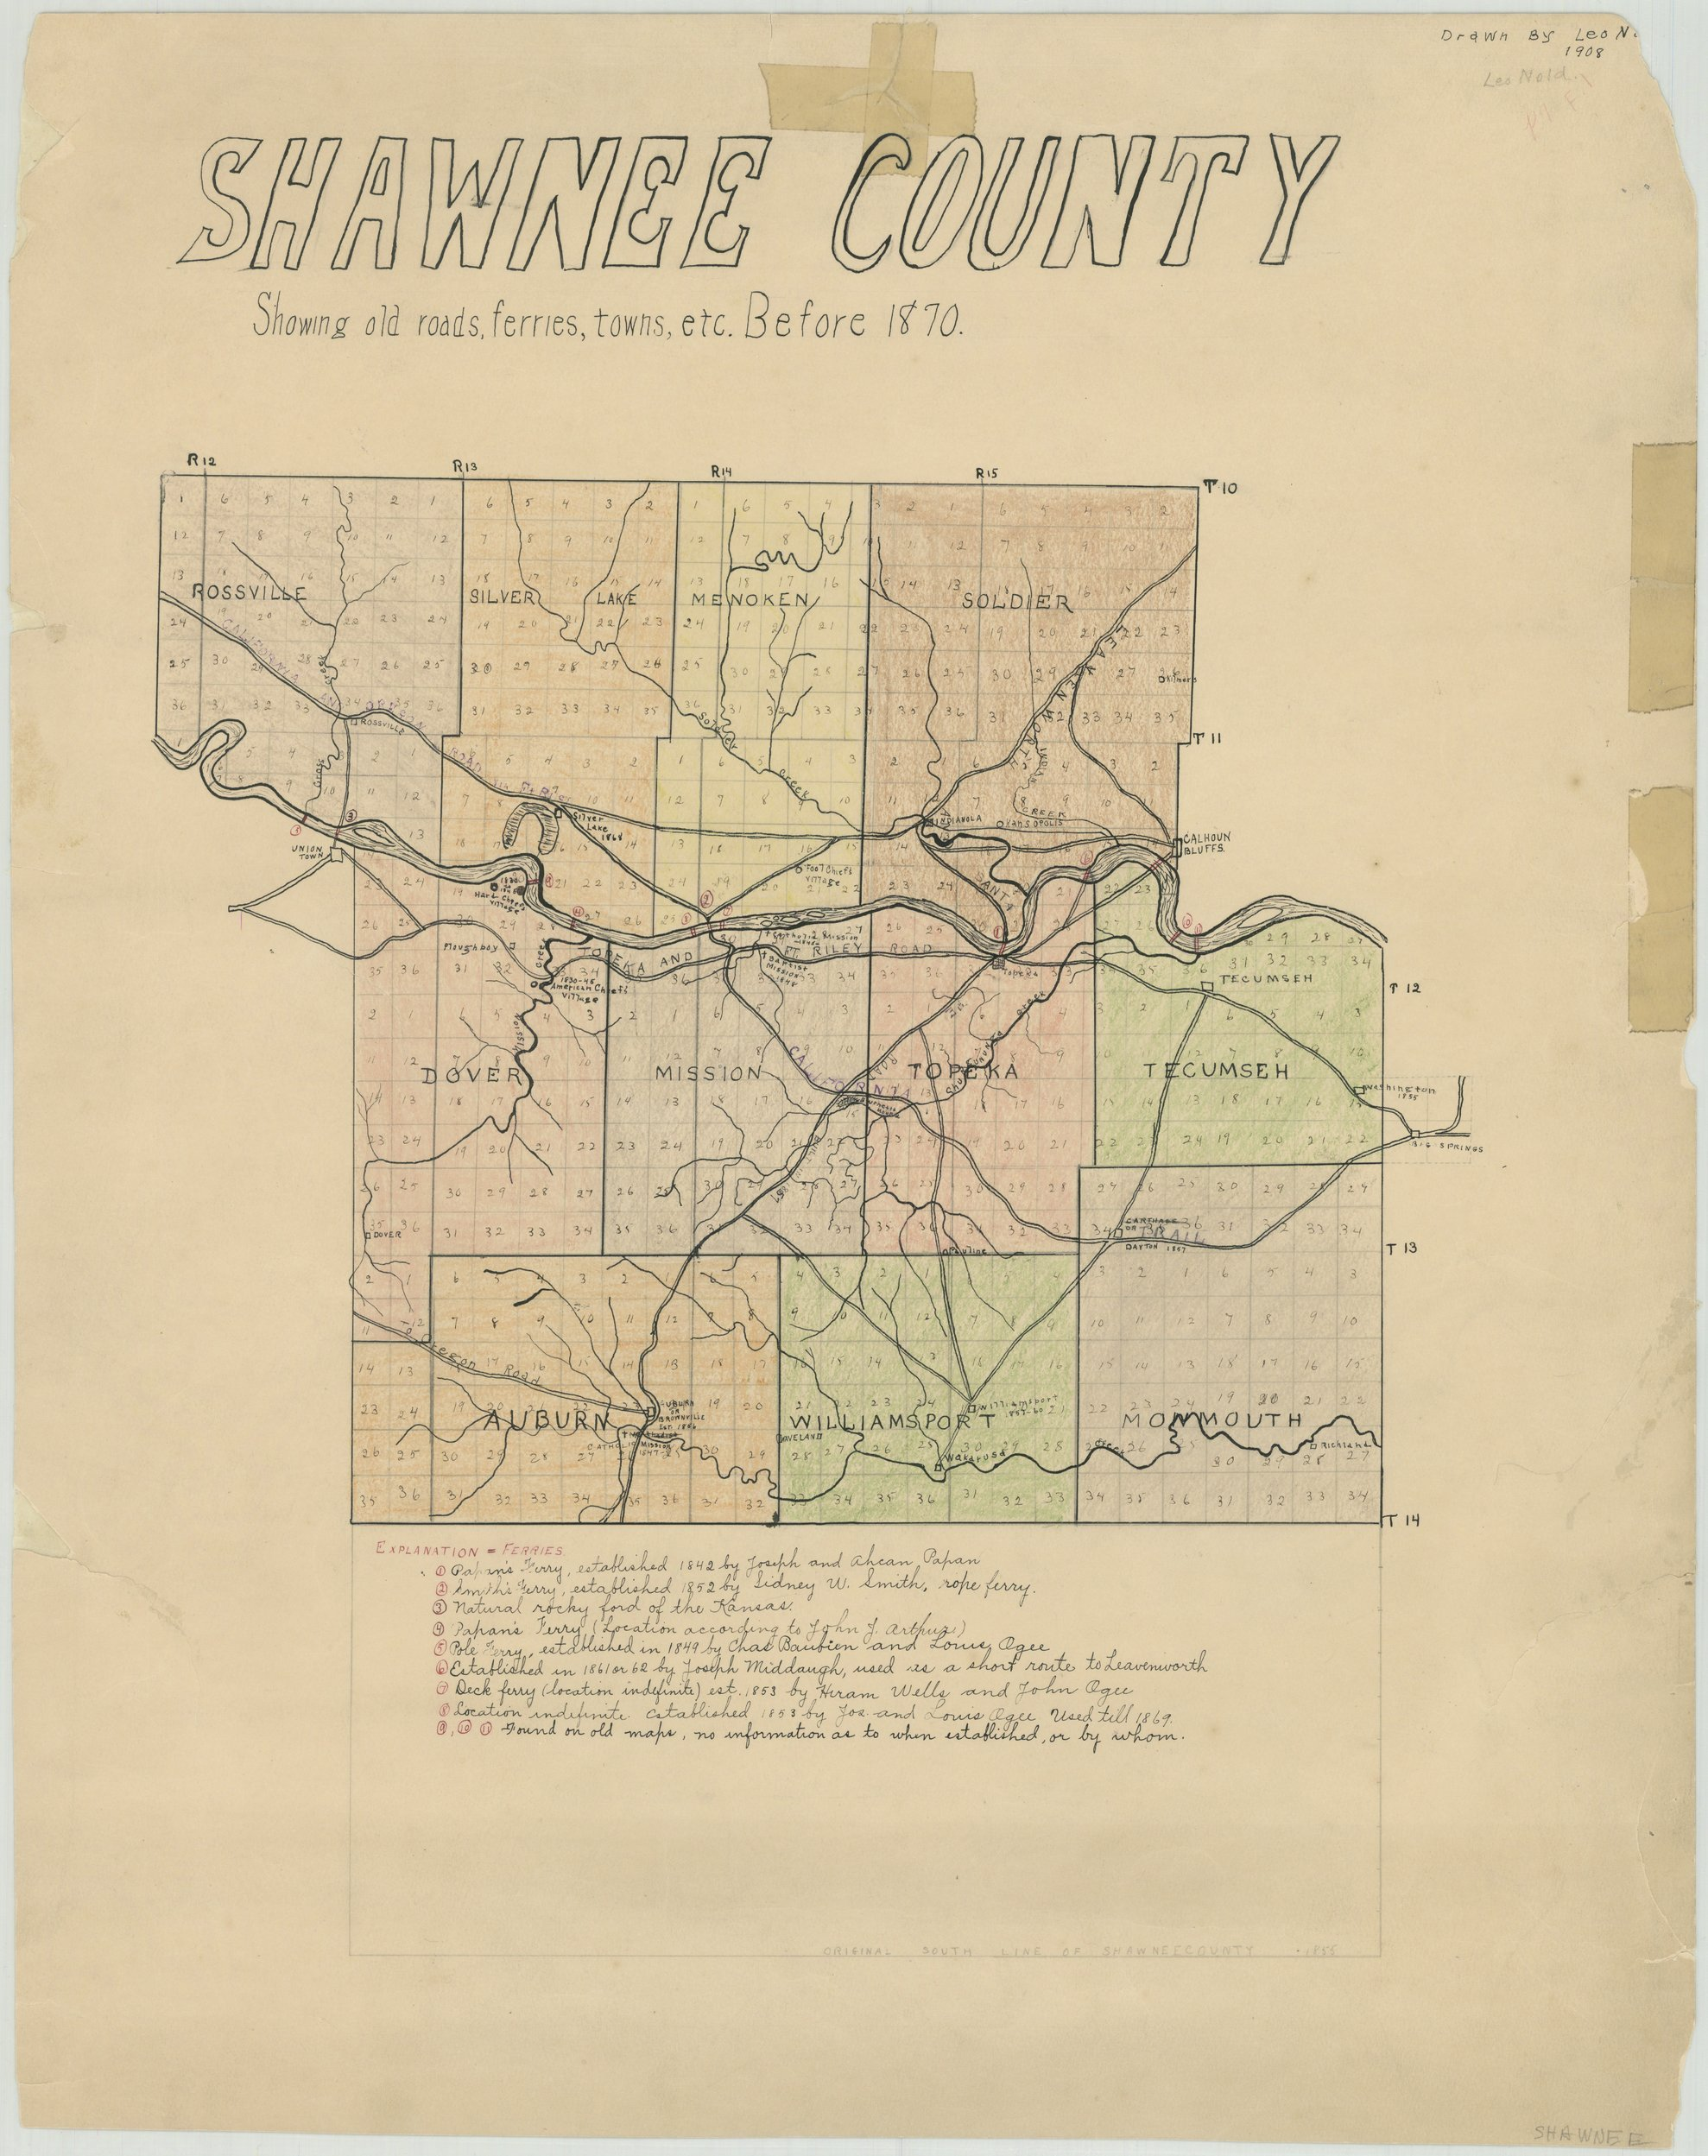 Map of Shawnee County - Kansas Memory - Kansas Historical ... Shawnee Map on shinnecock indian nation map, santa fe map, lochbuie map, northwest oklahoma city map, inola map, raytown map, alabama-coushatta tribe of texas map, ohio national map, bennettsville map, northwest indian war map, alcova map, town of wheatfield map, cedartown map, boston map, charleston map, winnebago tribe of nebraska map, idabel ok map, eastern band of cherokee indians map, medicine lodge map, coushatta tribe of louisiana map,